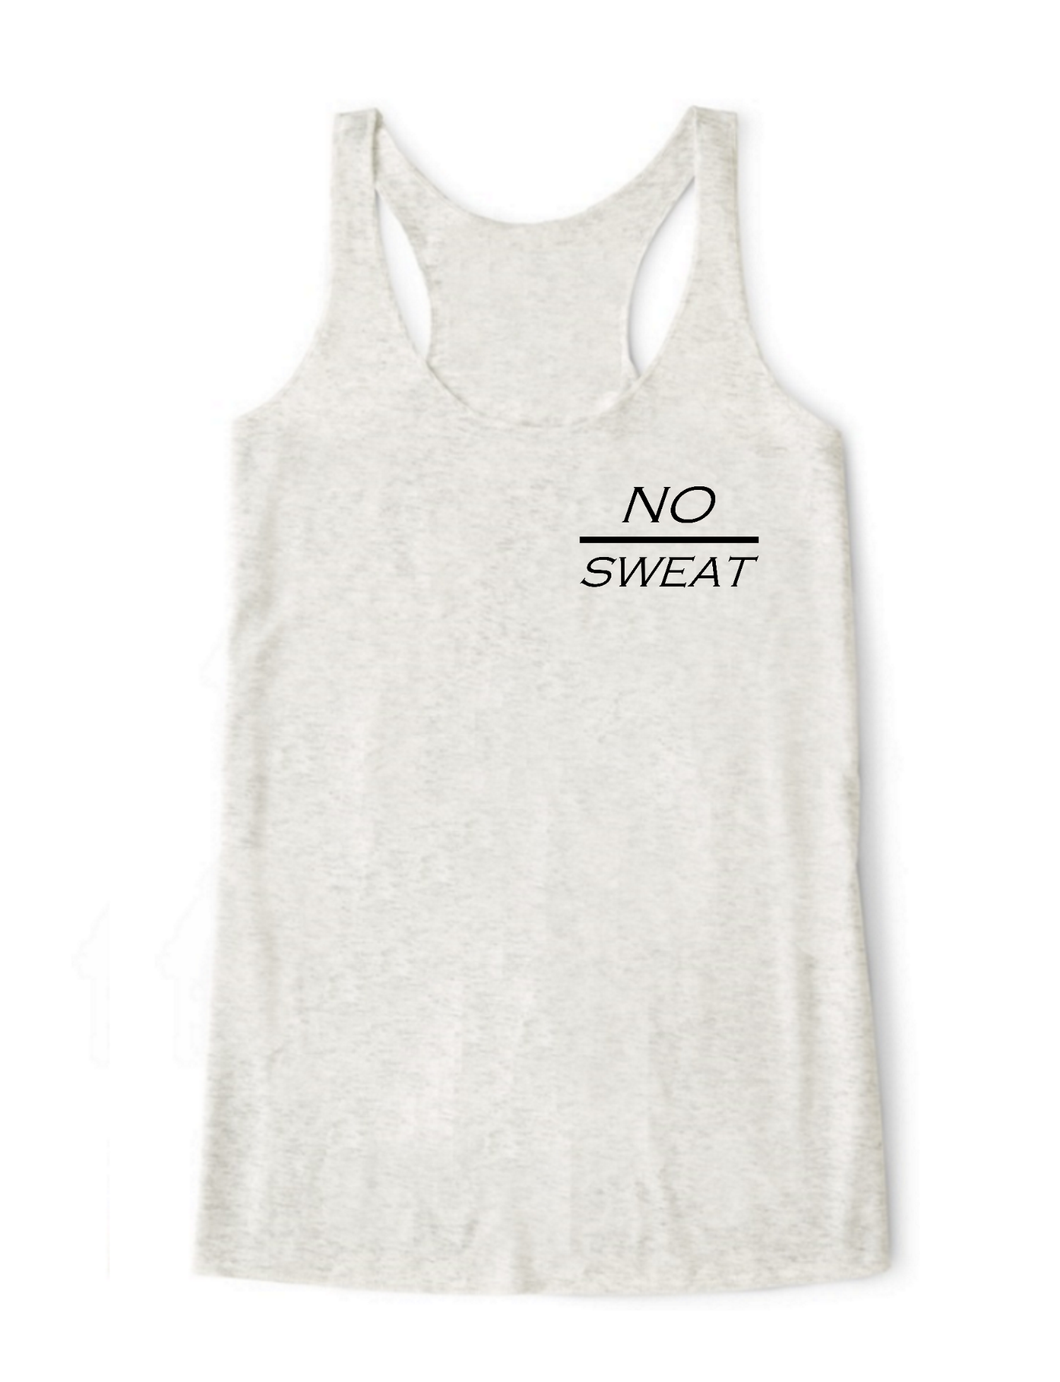 No Sweat Tank Top - BY DEFINITION